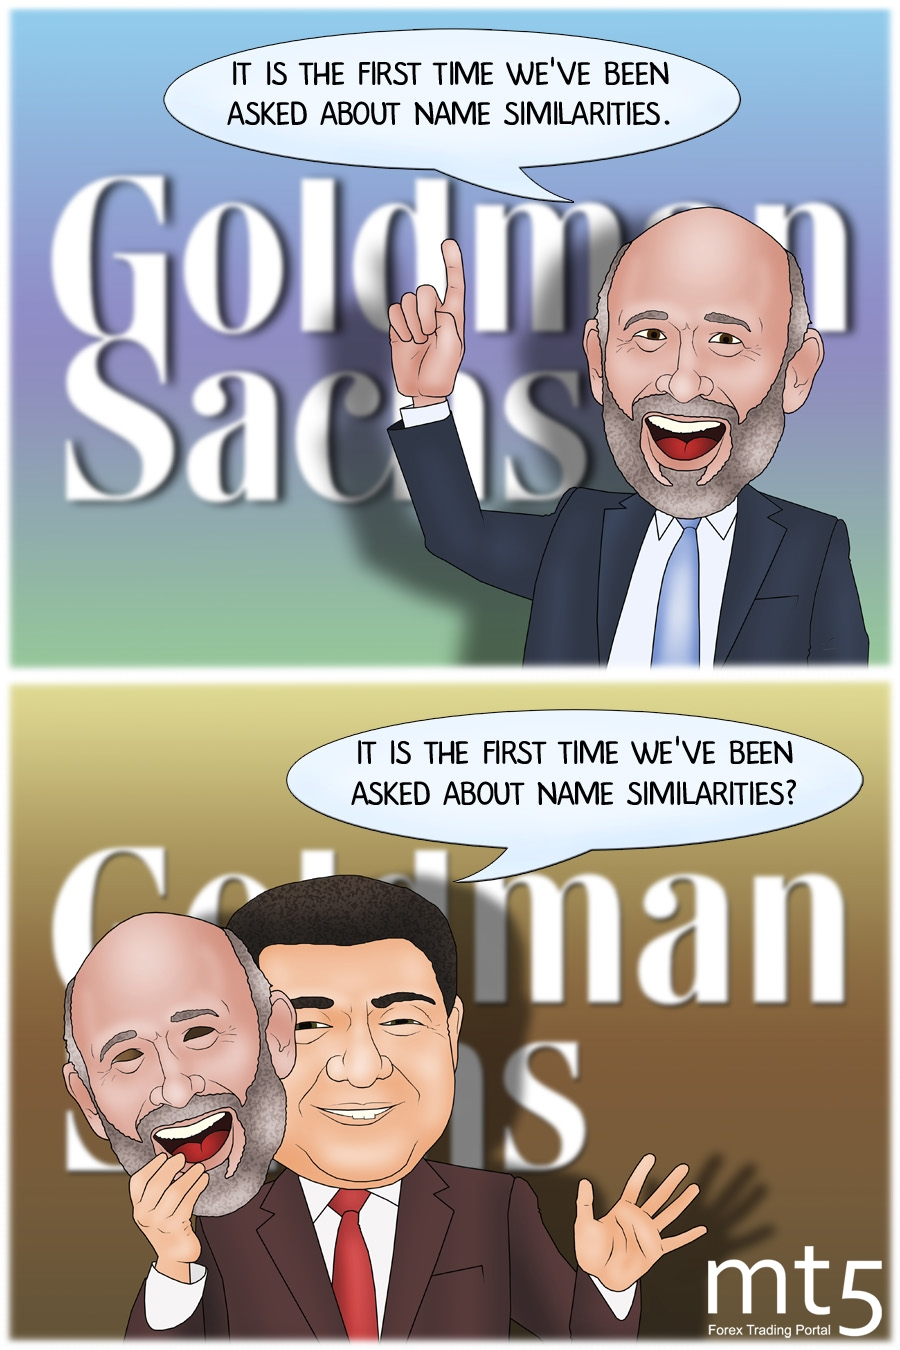 Fake Goldman Sachs appears in China